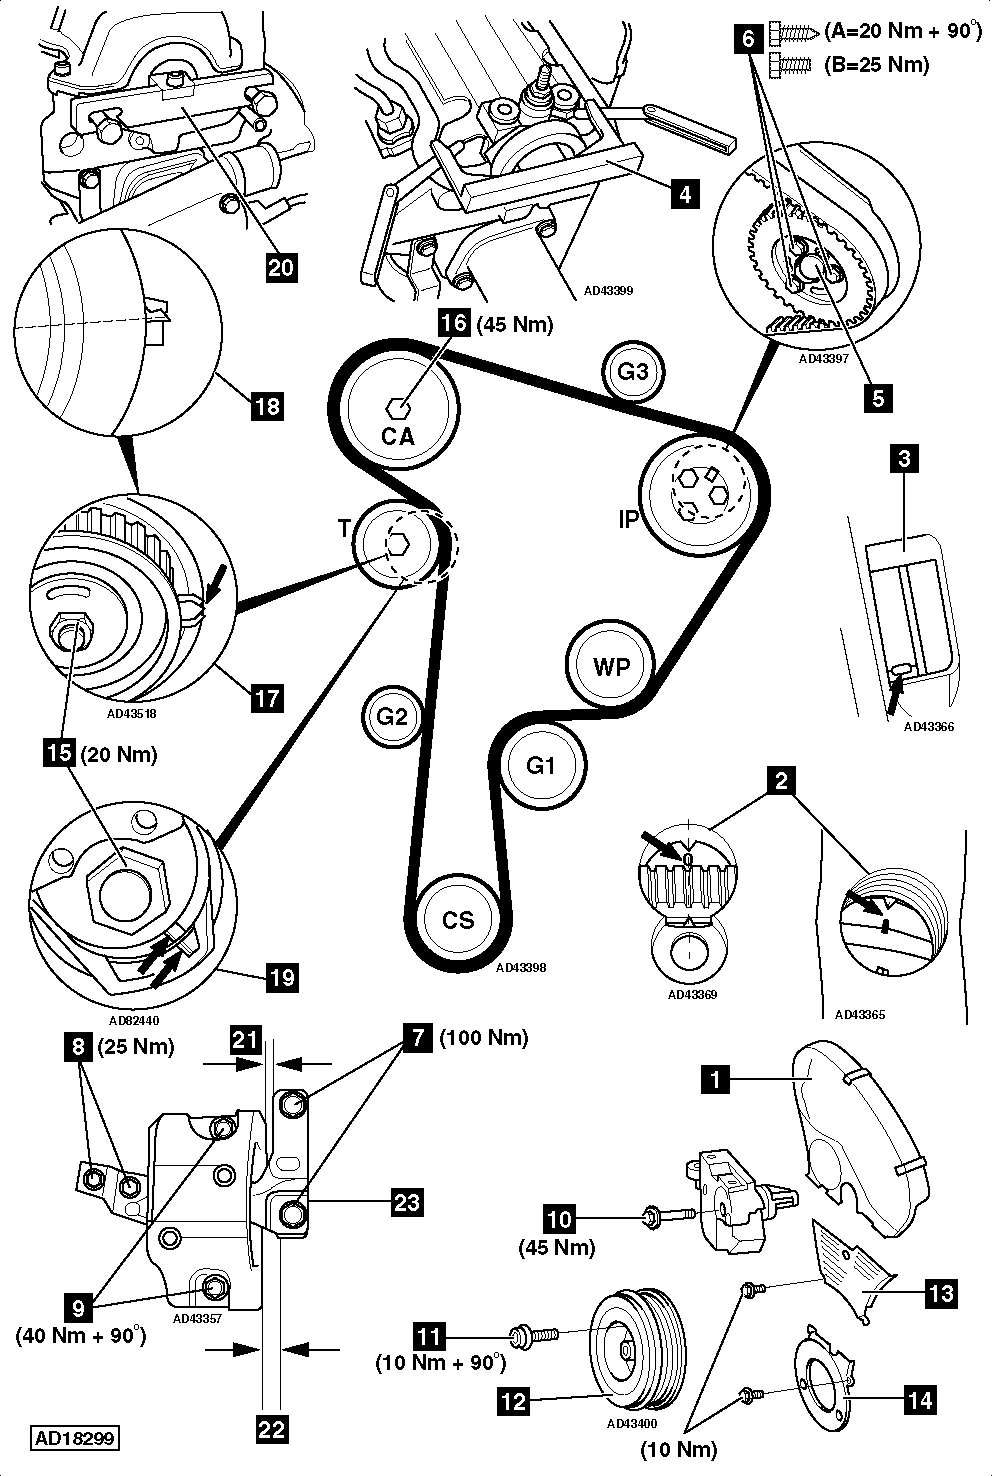 vw tdi timing belt diagram  vw  free engine image for user